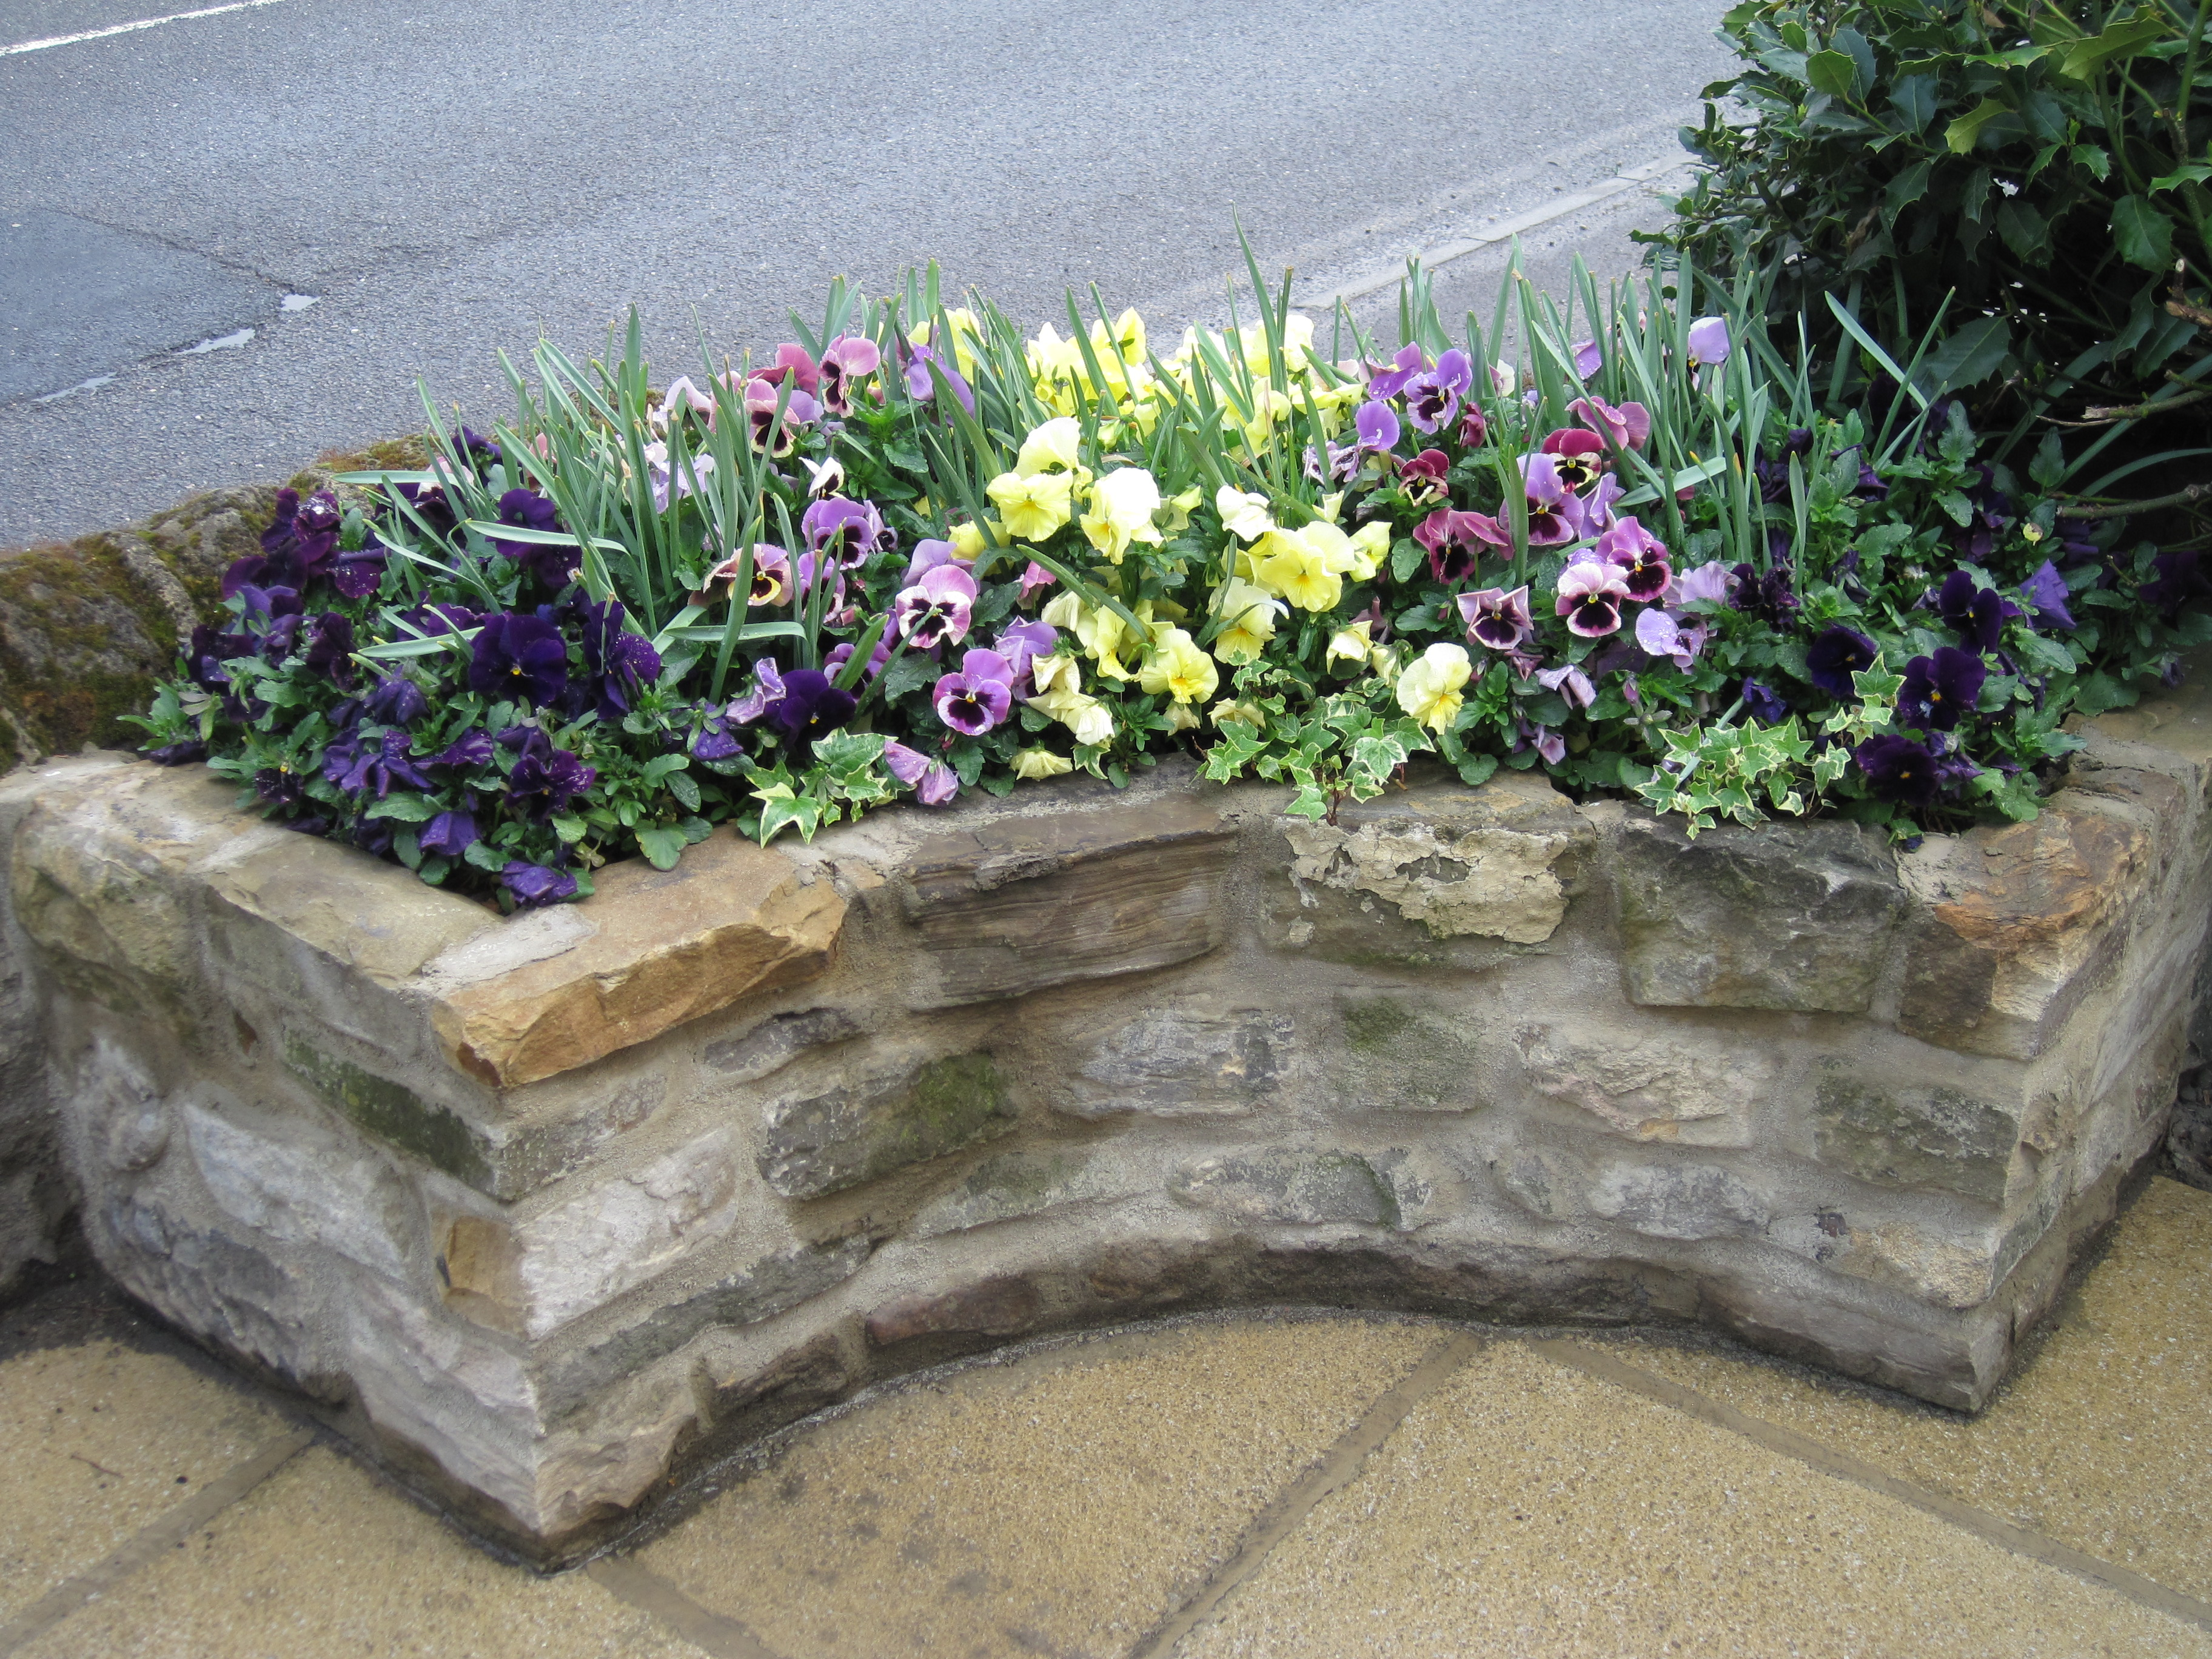 Commercial frontage - seasonal planting